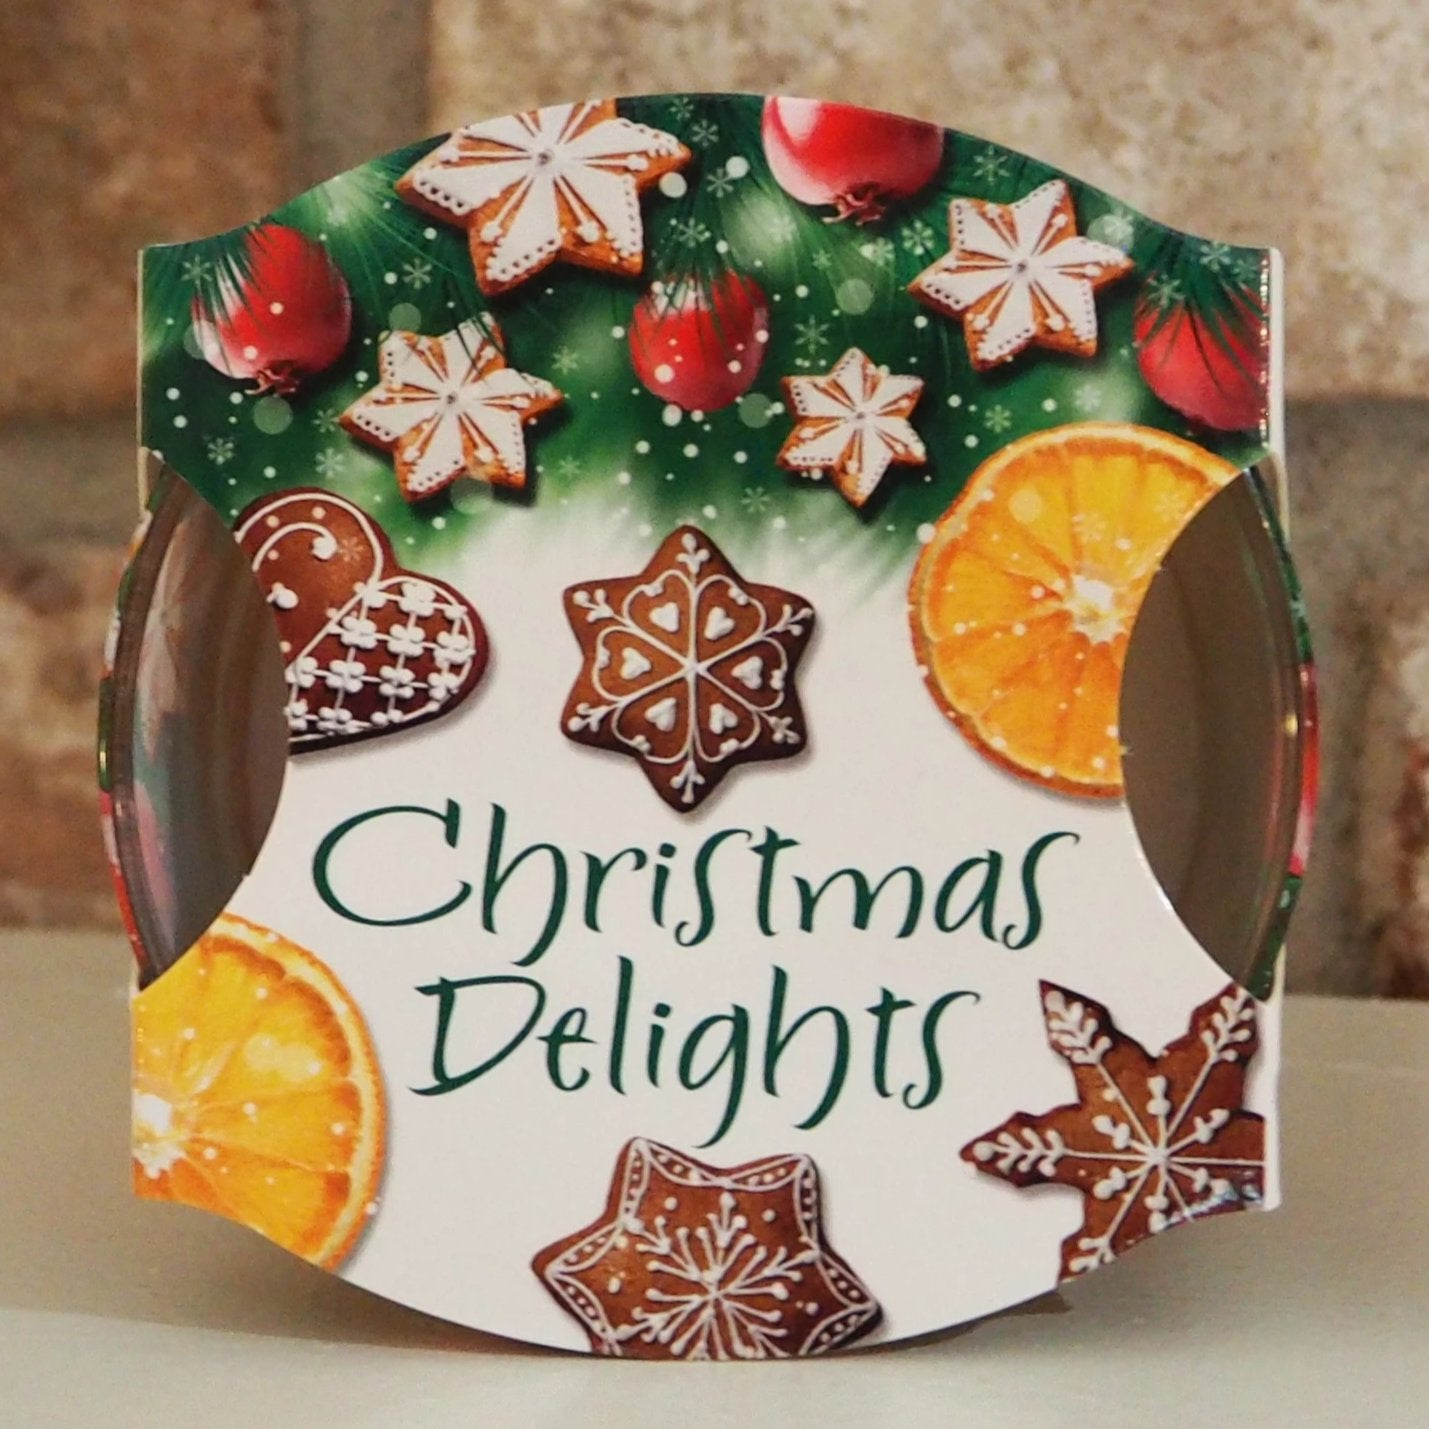 Christmas Scented Candle - Christmas Delights